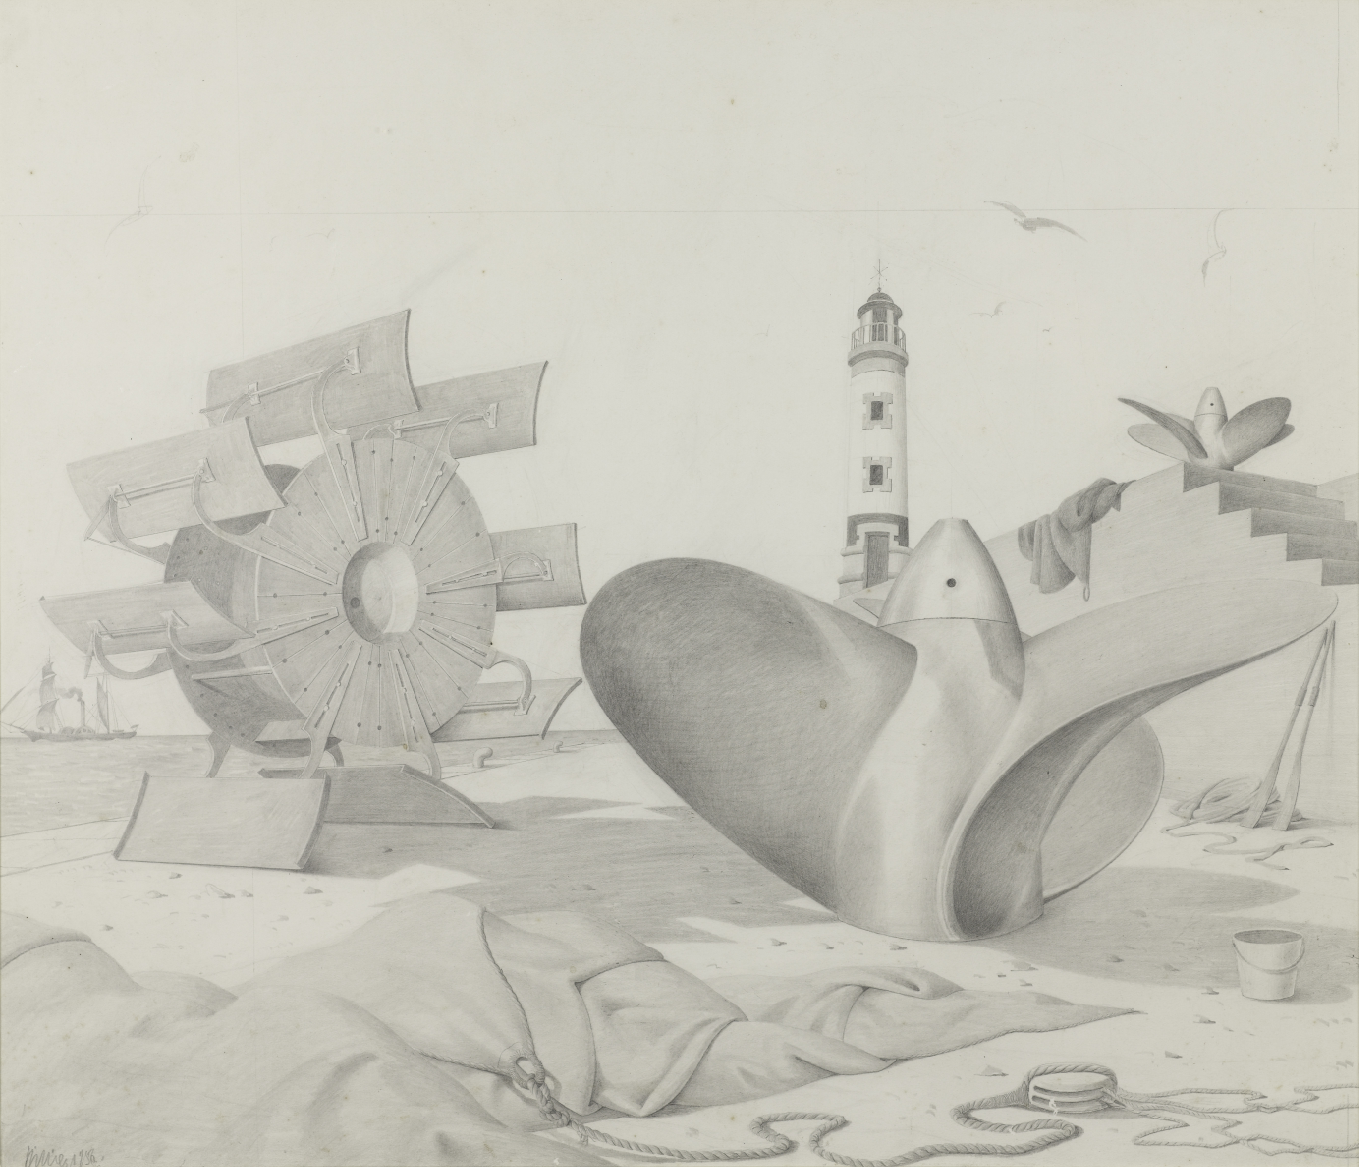 Highly detailed pencil sketch showing a sandy beach dominated by a large shipping propellor and water wheel. In the foreground is a large piece of draped material and a curving rope. Overlooking the scene is a lighthouse.